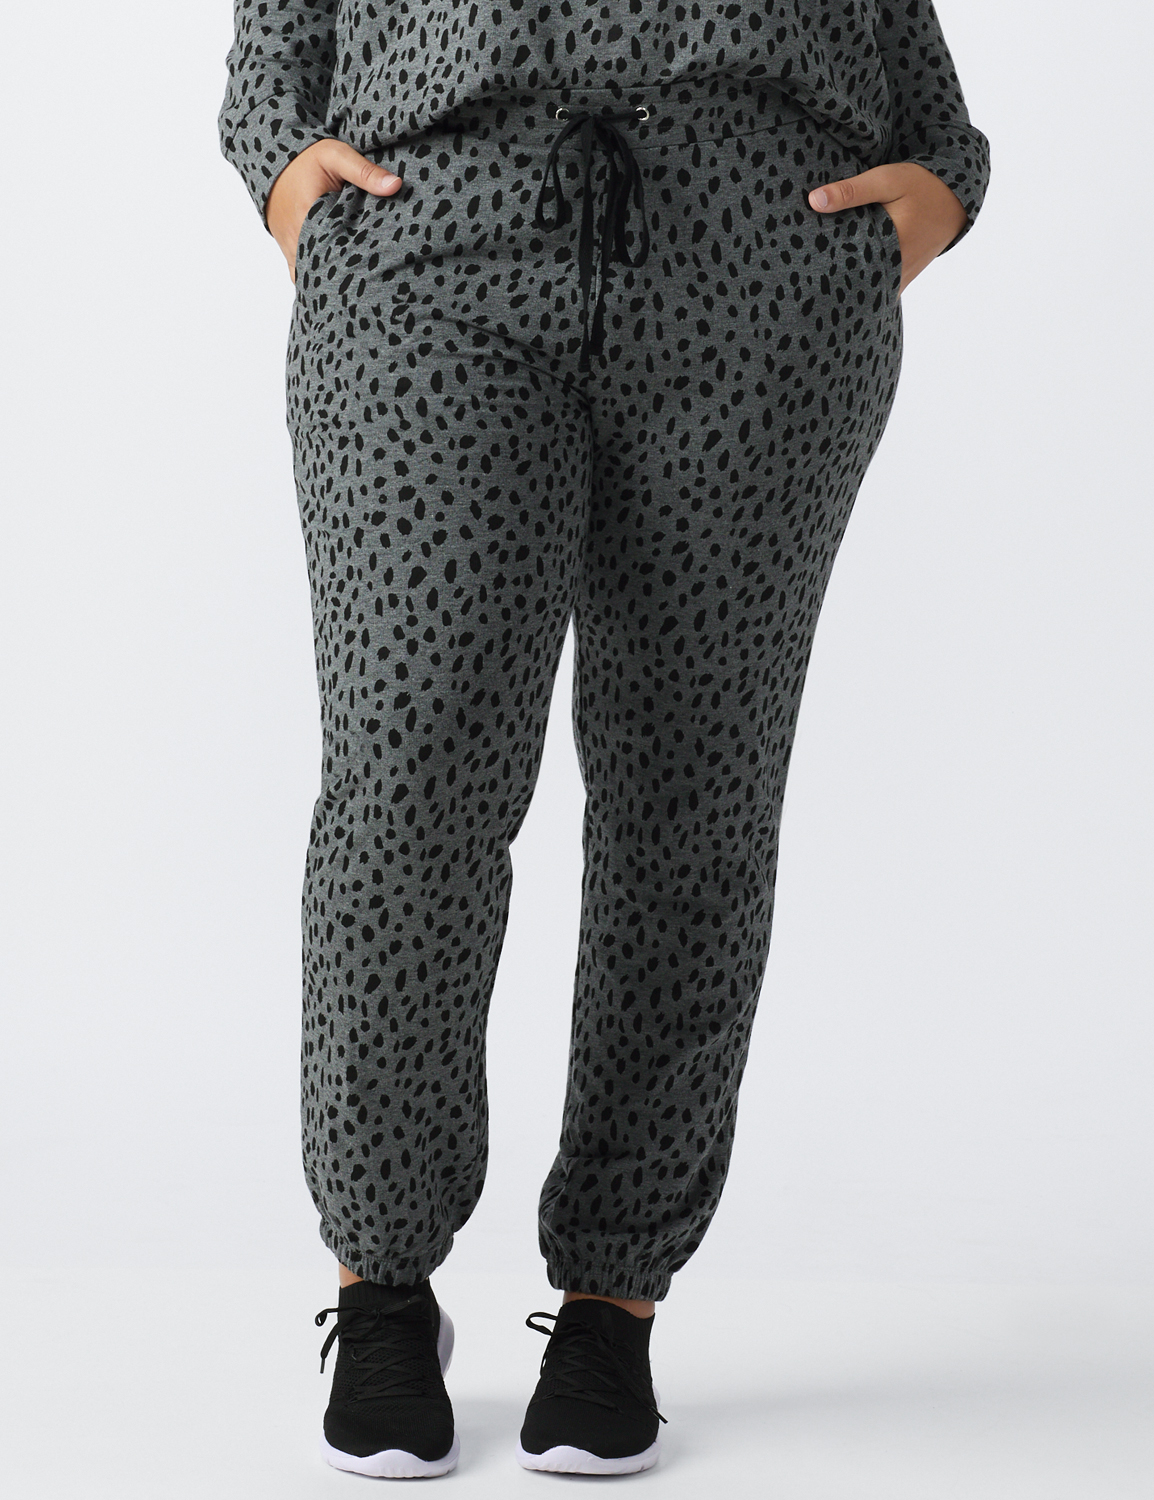 Animal French Terry Knit Jogger - Plus -Gray / Black print - Front